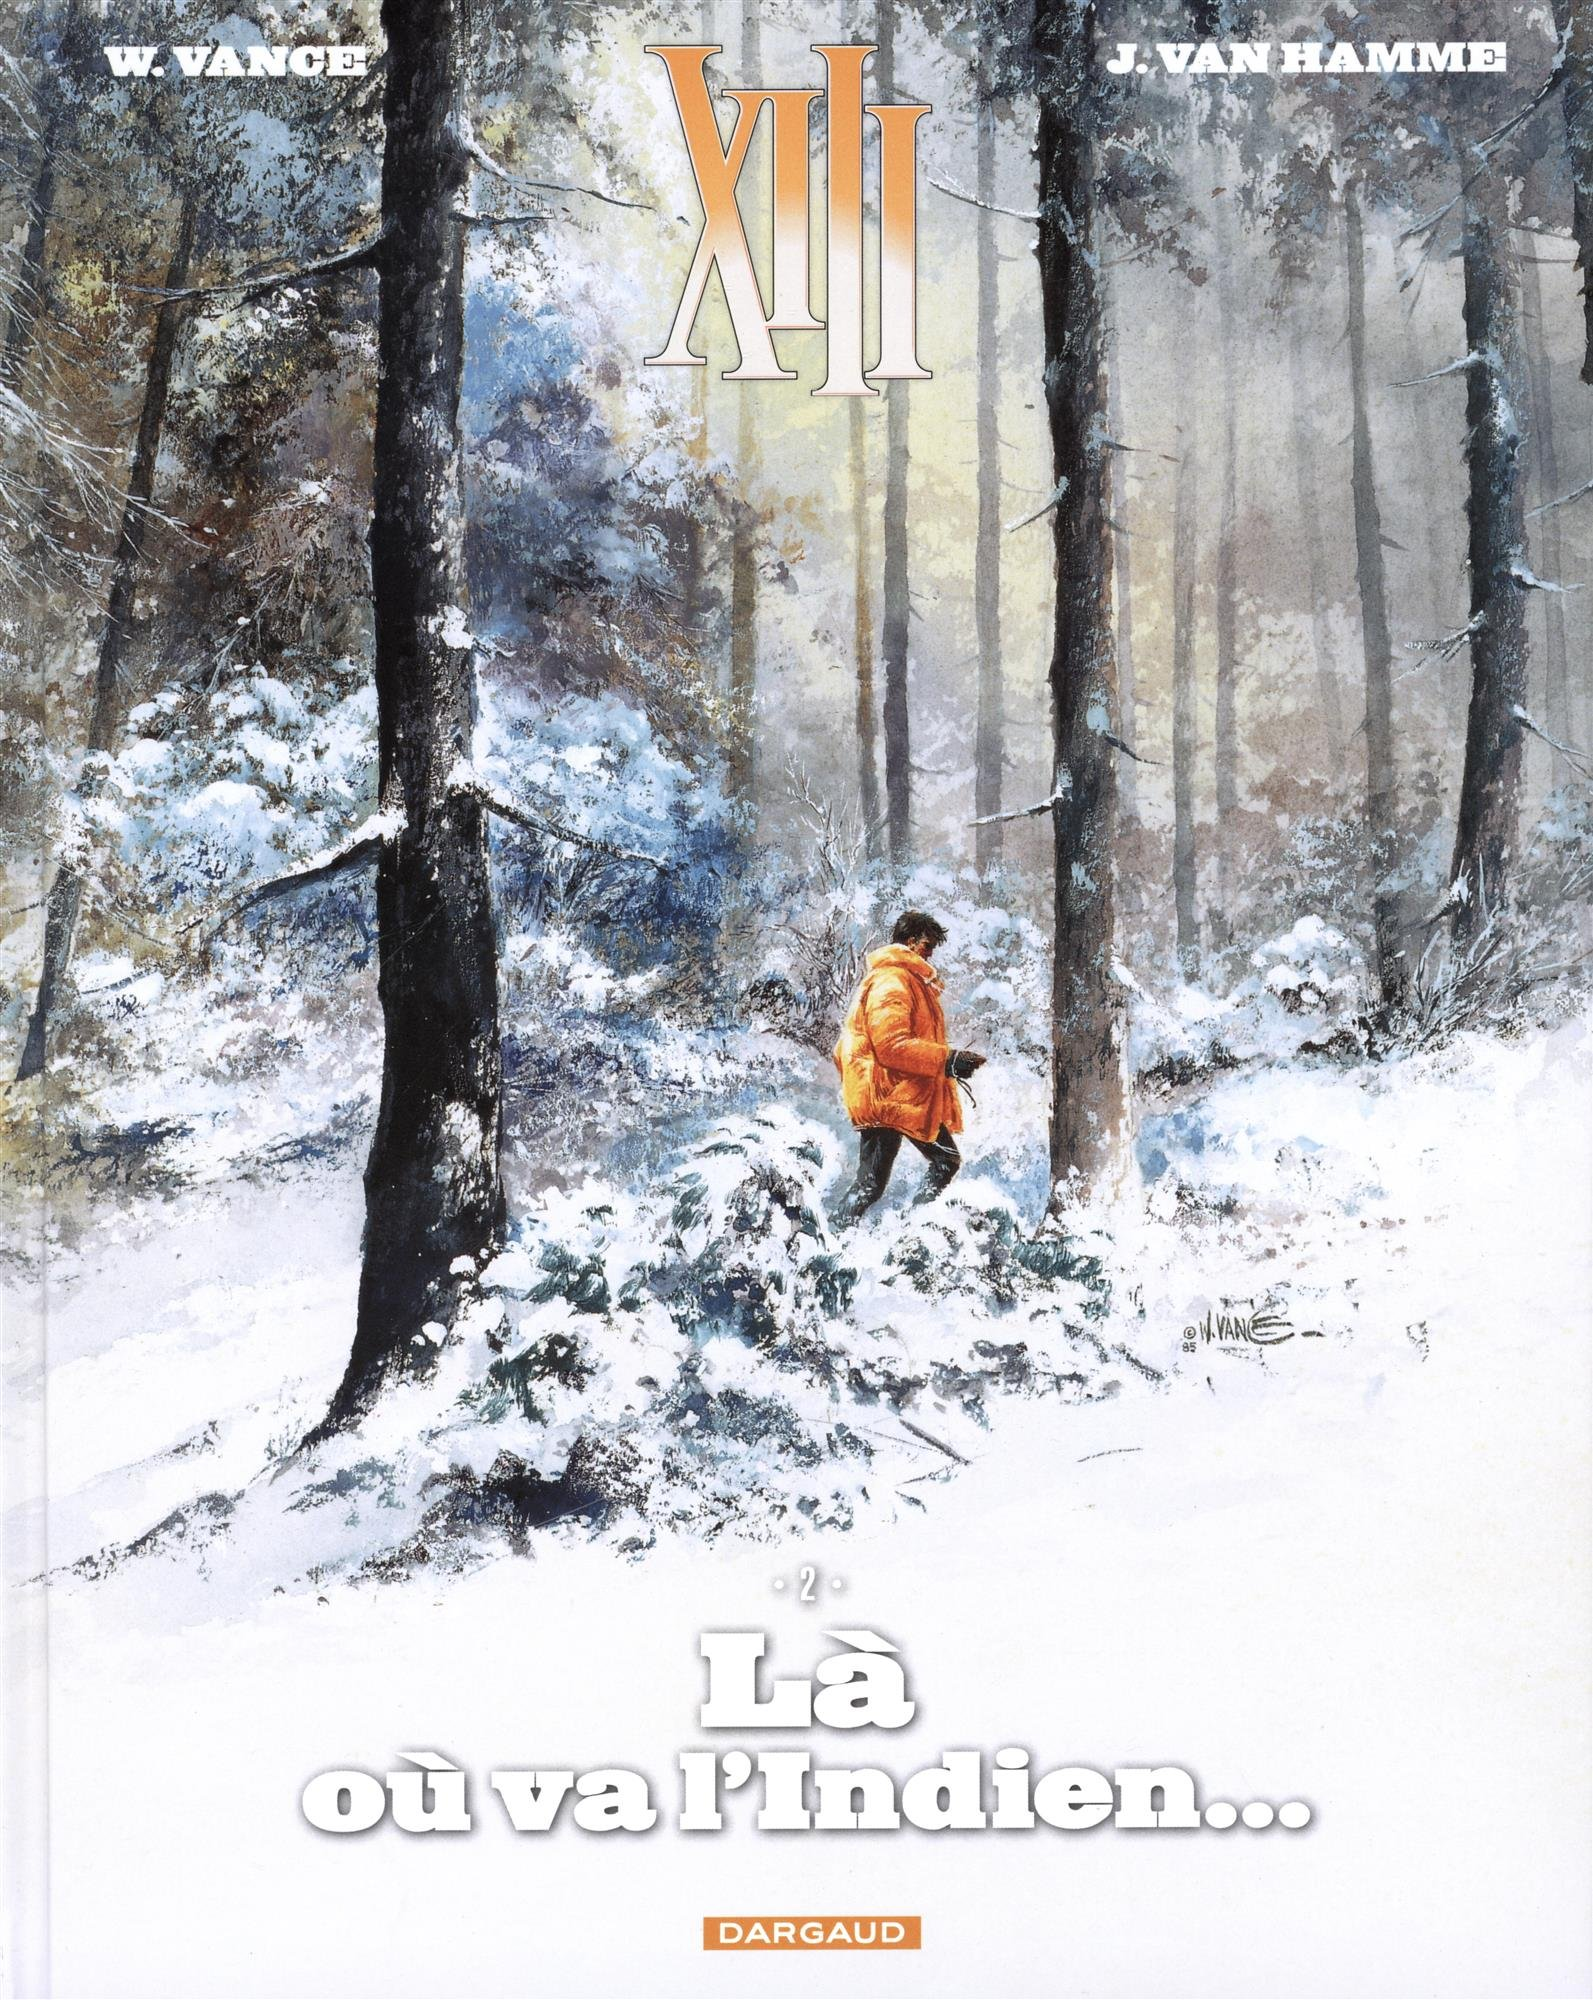 XIII, Tome 2 : Là où va l'Indien: Amazon.co.uk: William Vance, Petra, Jean  Van Hamme: 9782505067757: Books